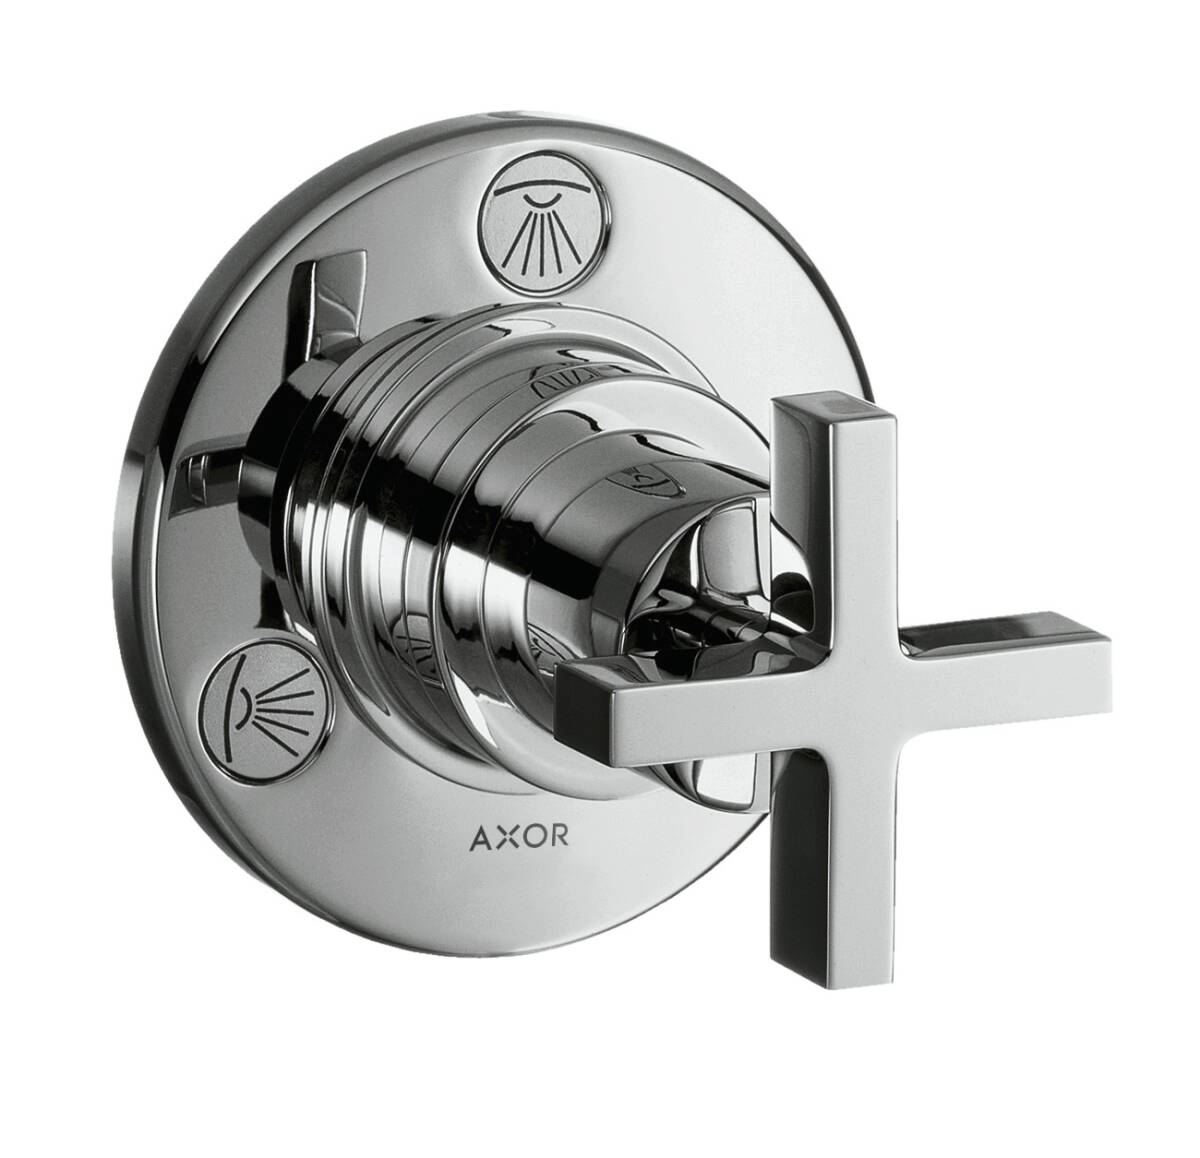 Shut-off/ diverter valve Trio/ Quattro for concealed installation with cross handle, Chrome, 39925000